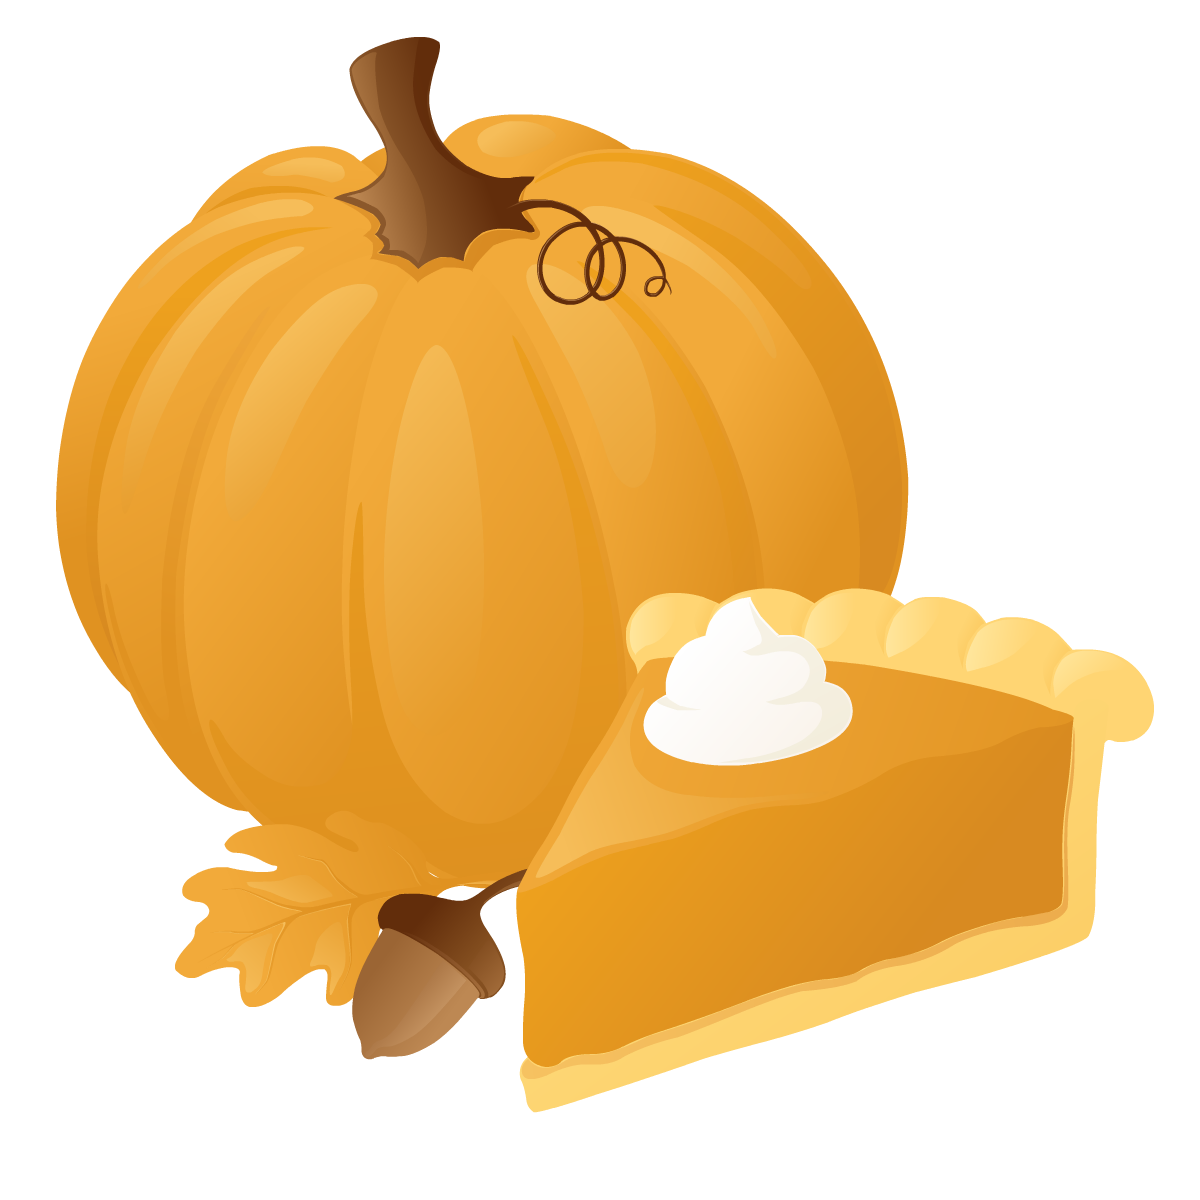 Whole Pumpkin Pie Clipart Halloweenfunky-Whole Pumpkin Pie Clipart Halloweenfunky Com-18